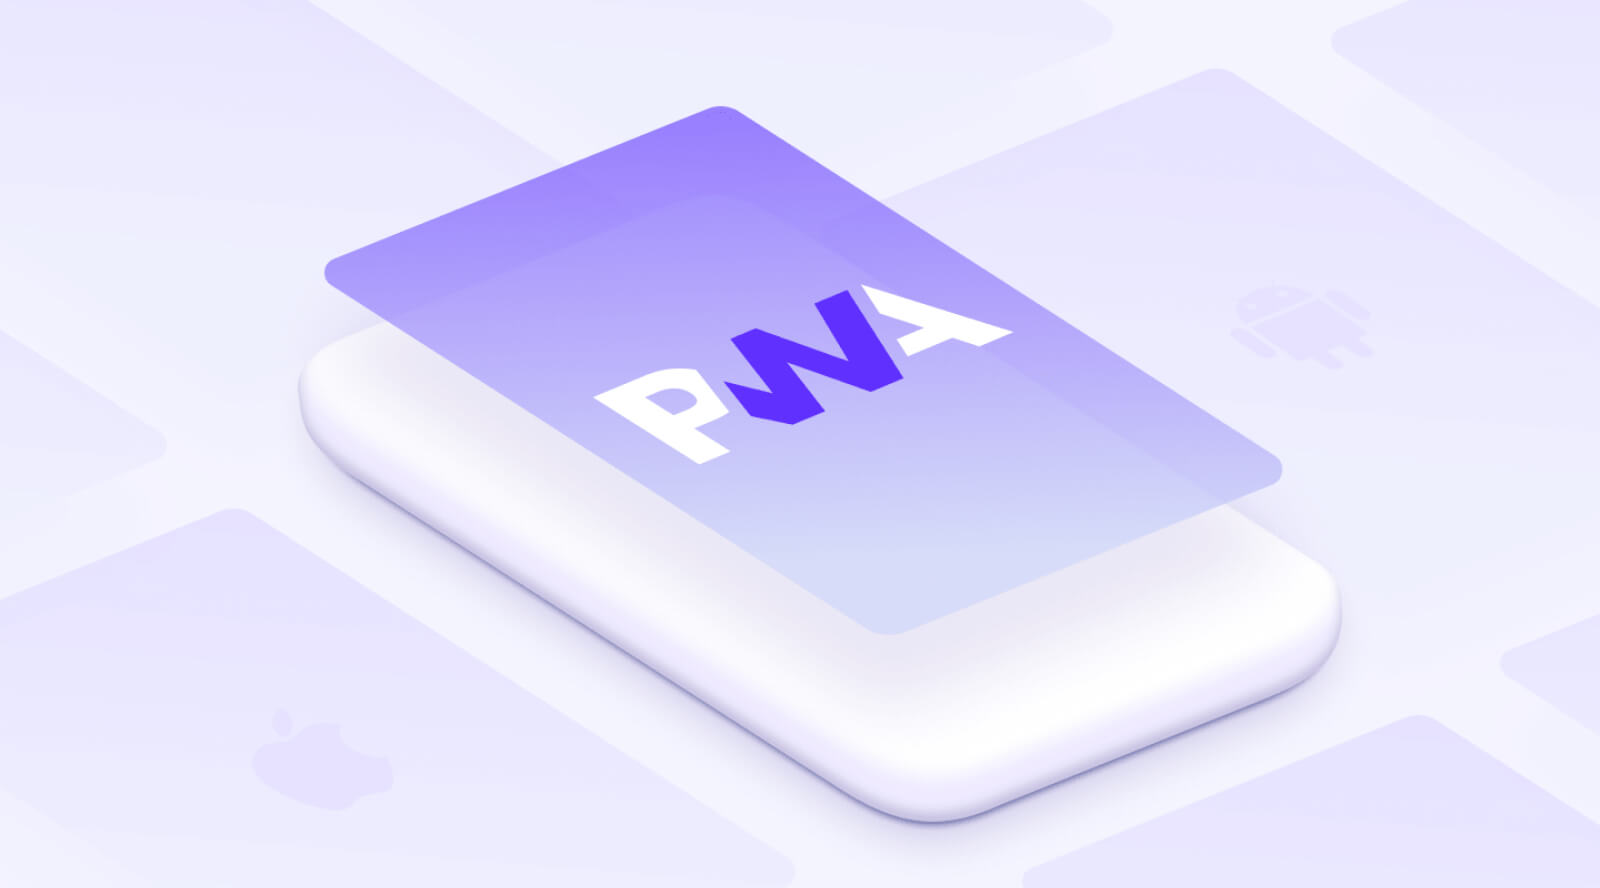 A white phone with PWA icon on the screen